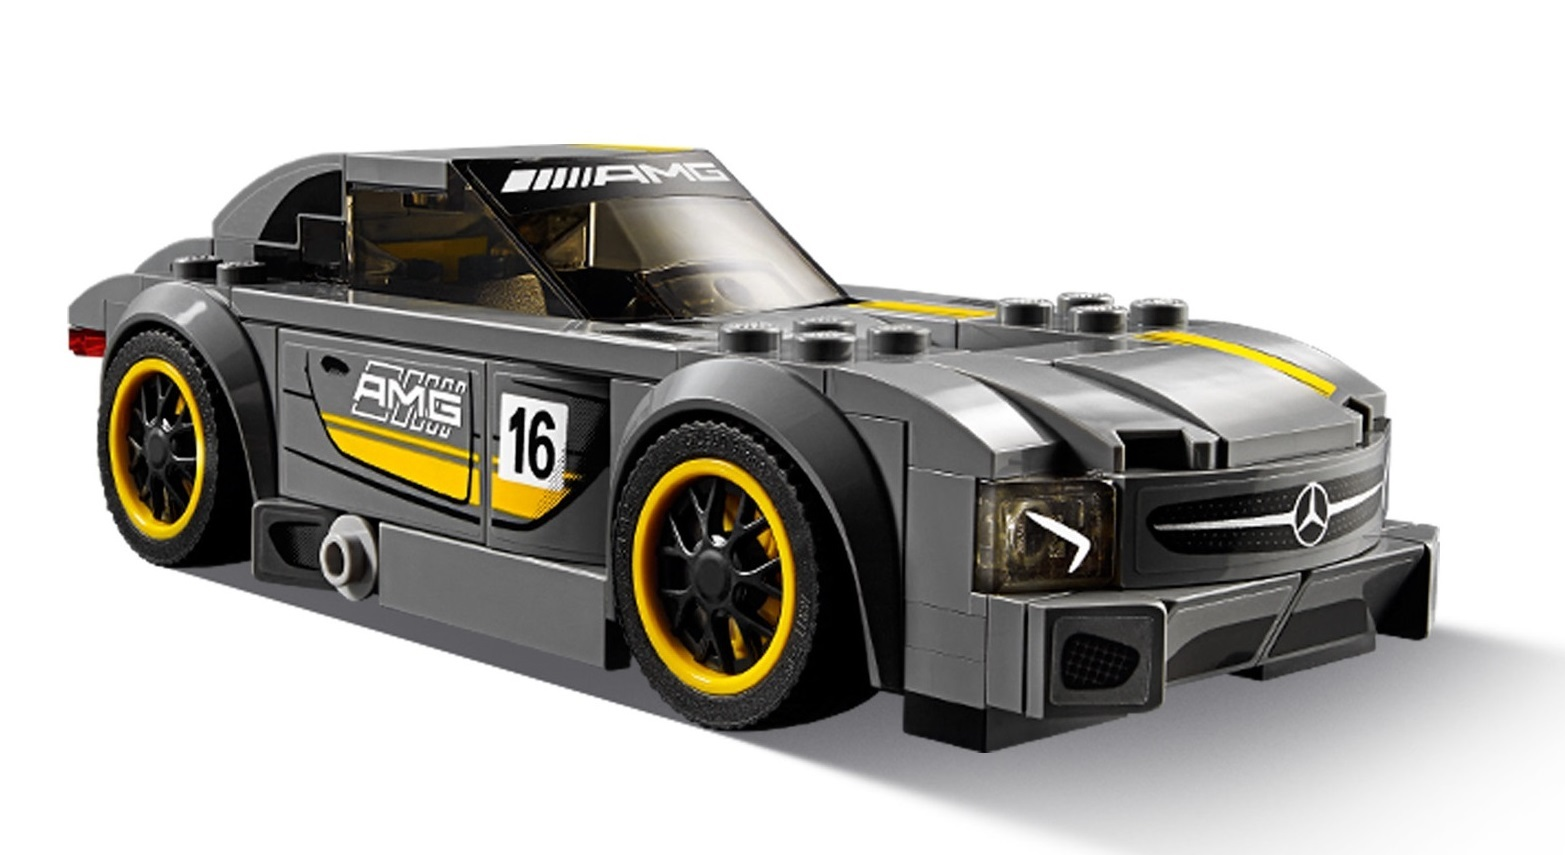 lego speed champions mercedes amg gt3 75877 toy at. Black Bedroom Furniture Sets. Home Design Ideas